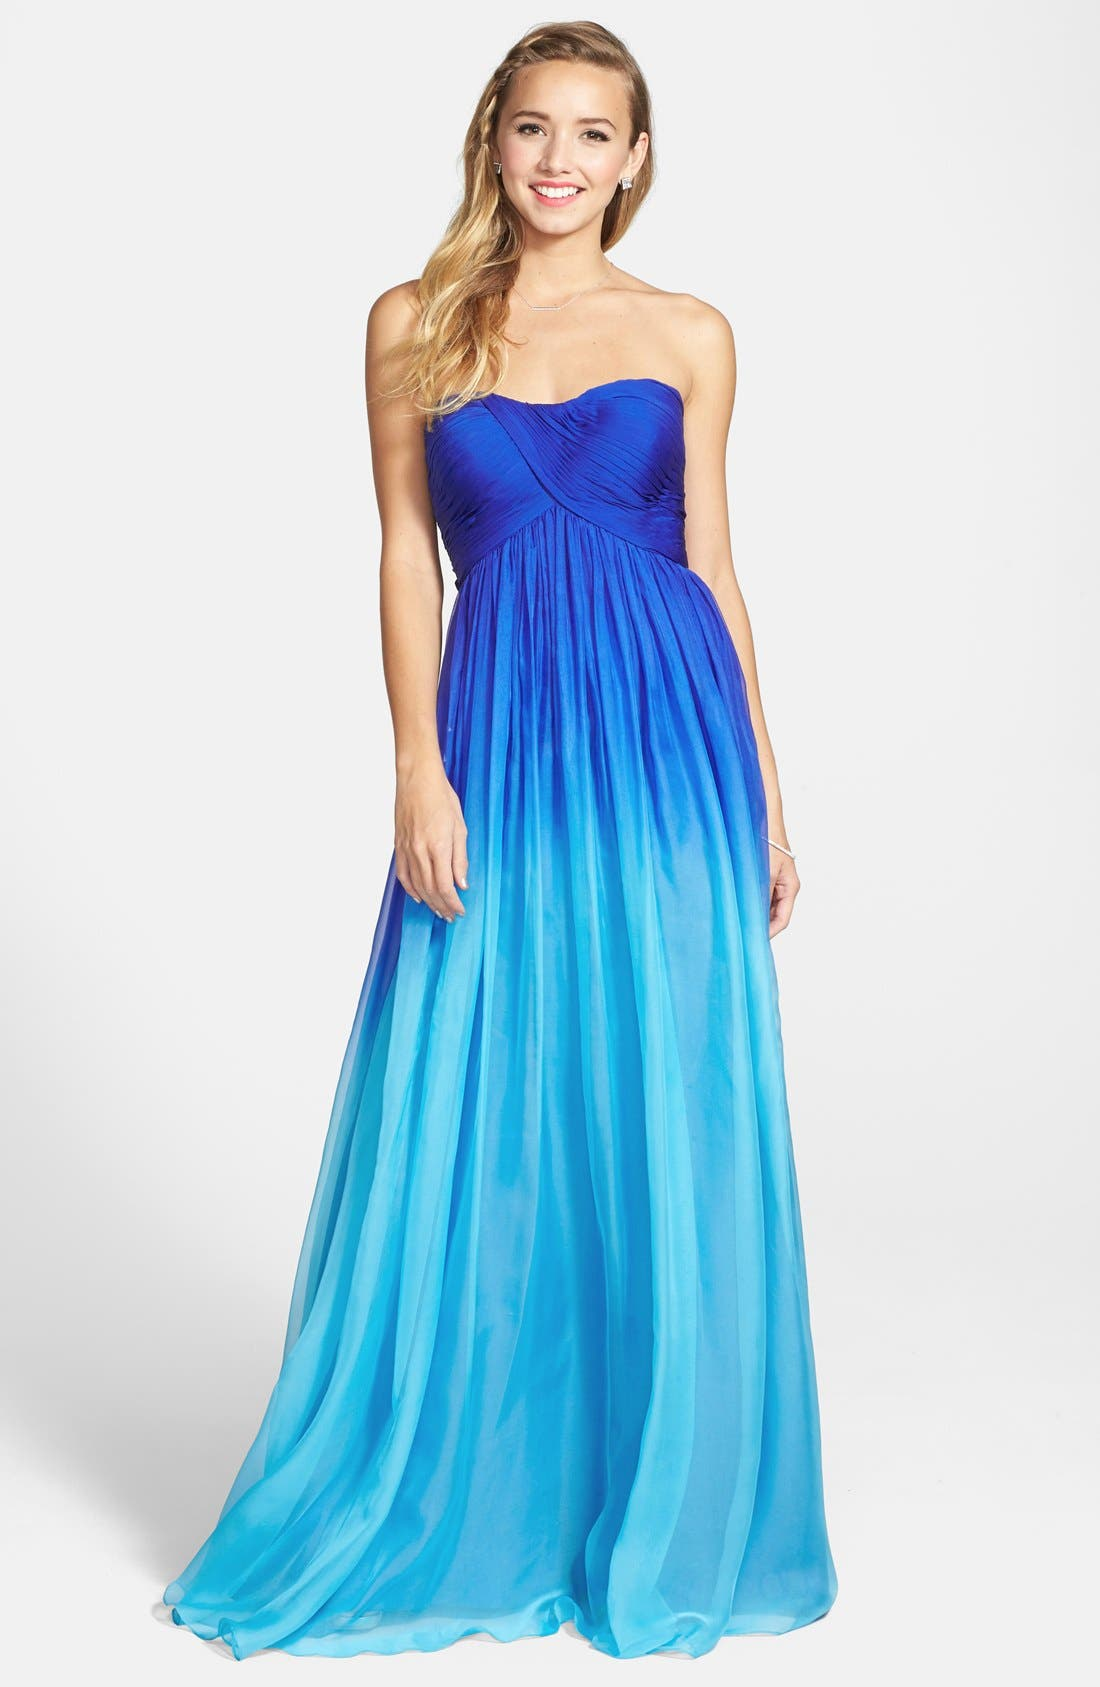 Ruched Ombré Chiffon Strapless Gown,                             Main thumbnail 1, color,                             440